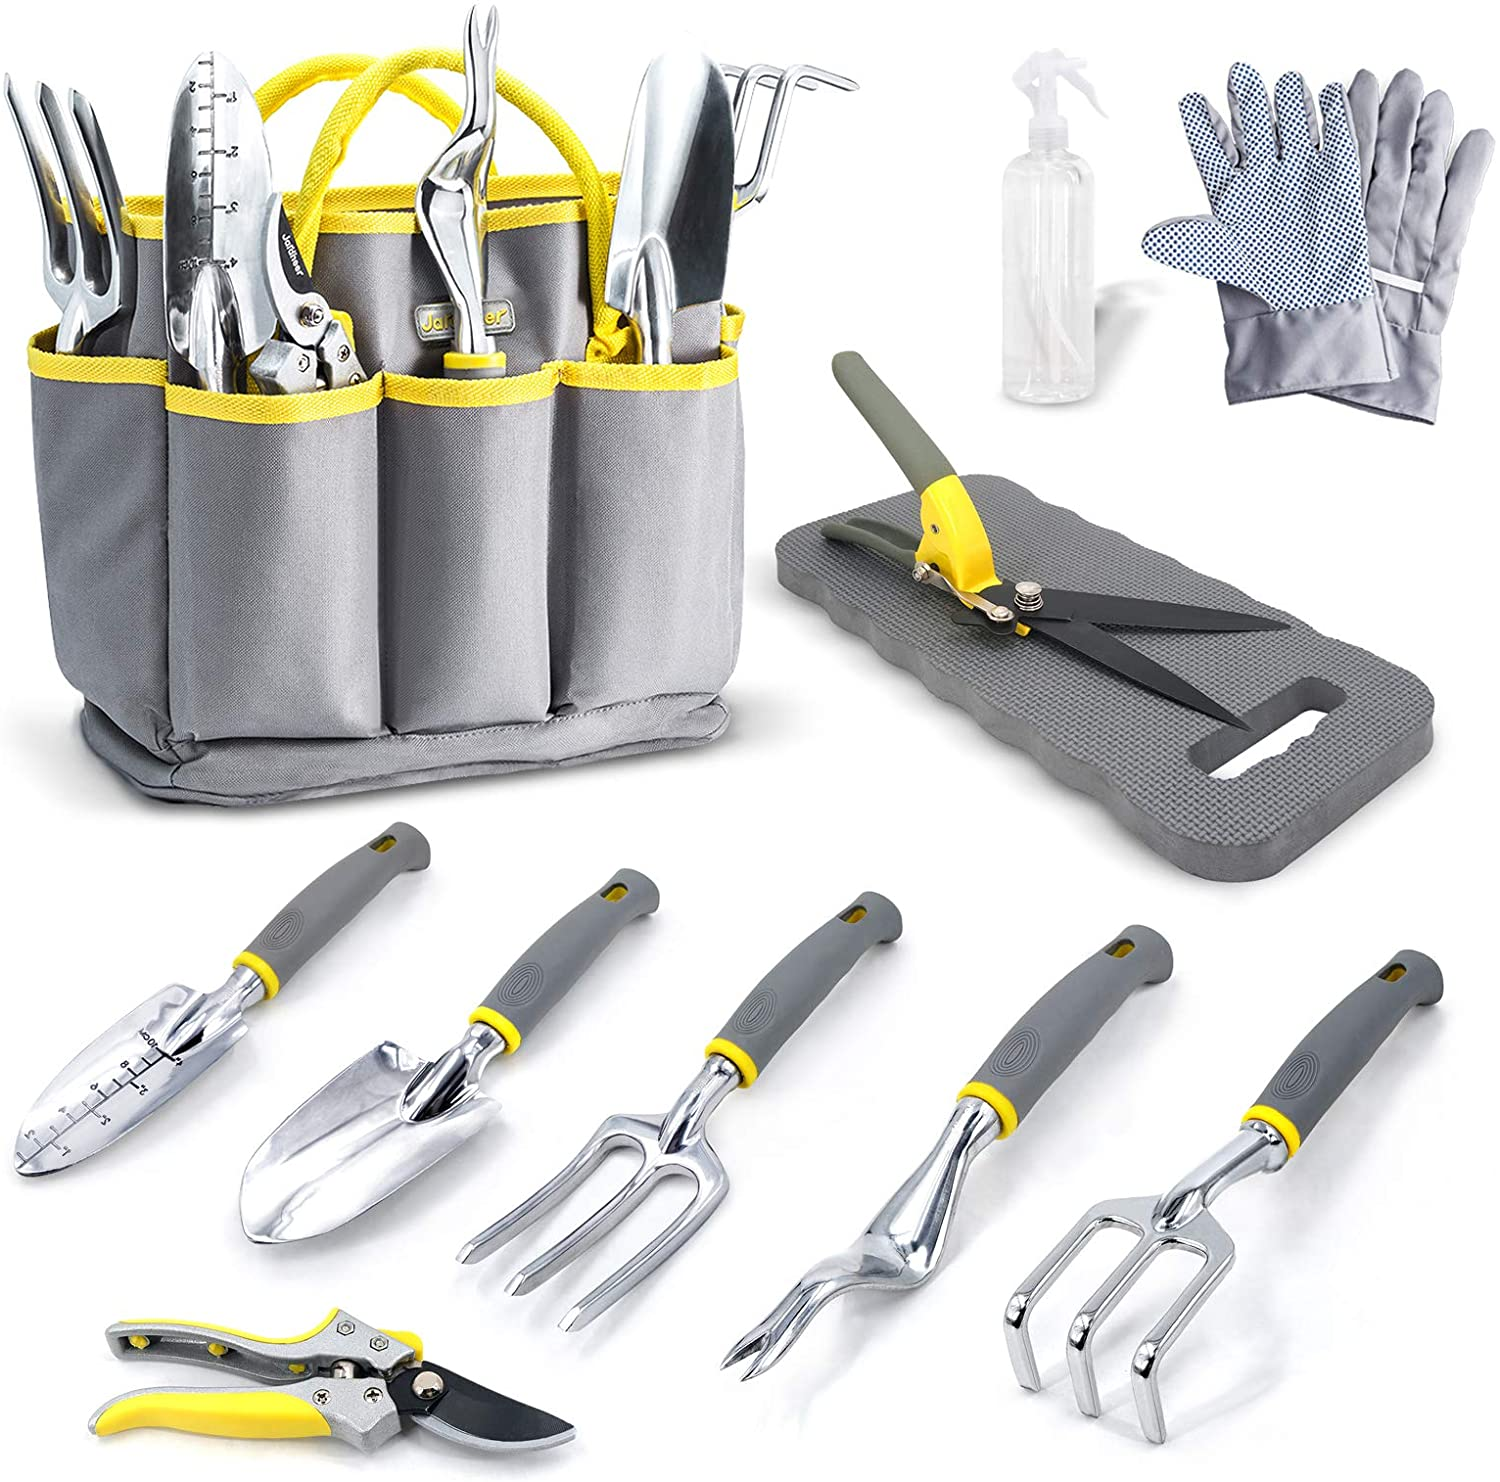 with Garden Gloves /& Garden Handbag and More Heavy Duty Gardening Tools Kits 11 Pieces Ulike Garden Tool Set Gardening Gifts for Woman